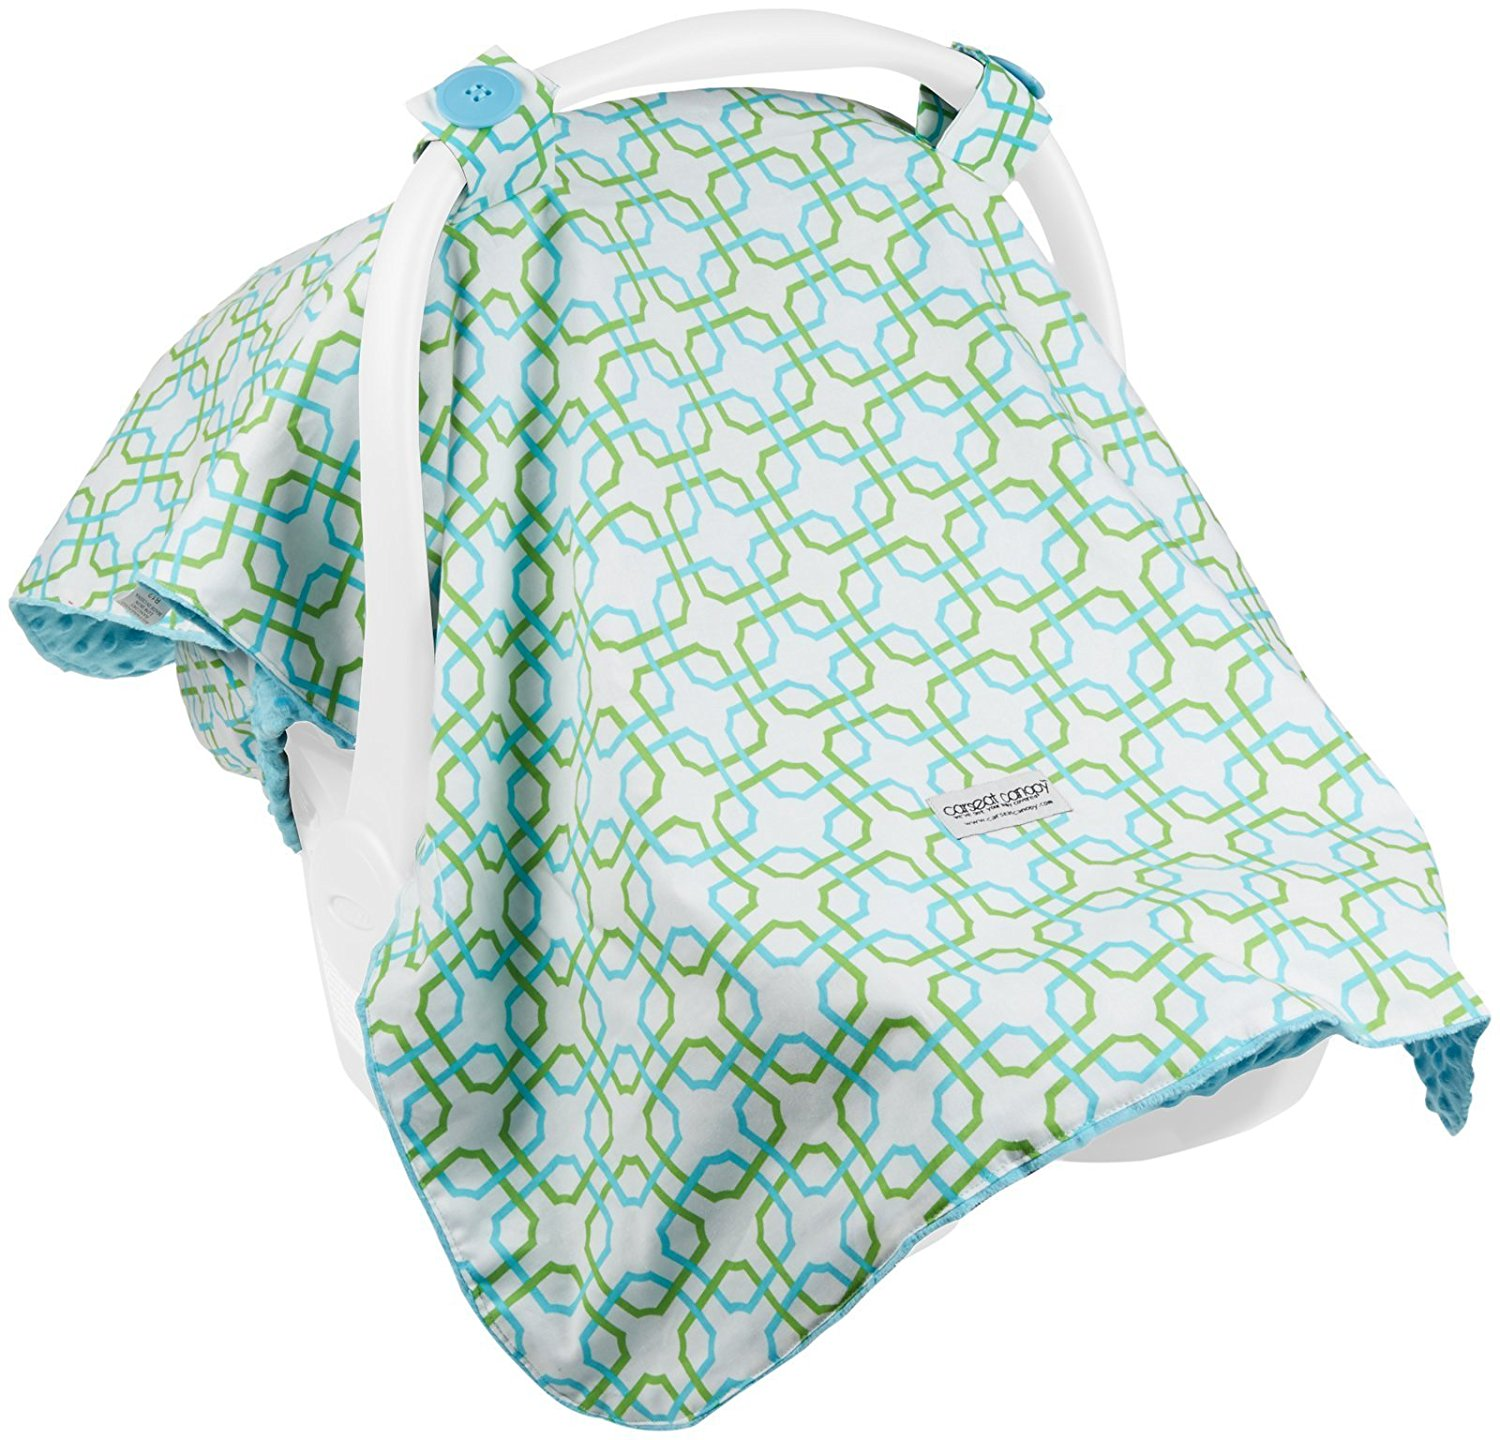 Carseat Canopy Baby Car seat Cover Blanket with Minky interior Hayden